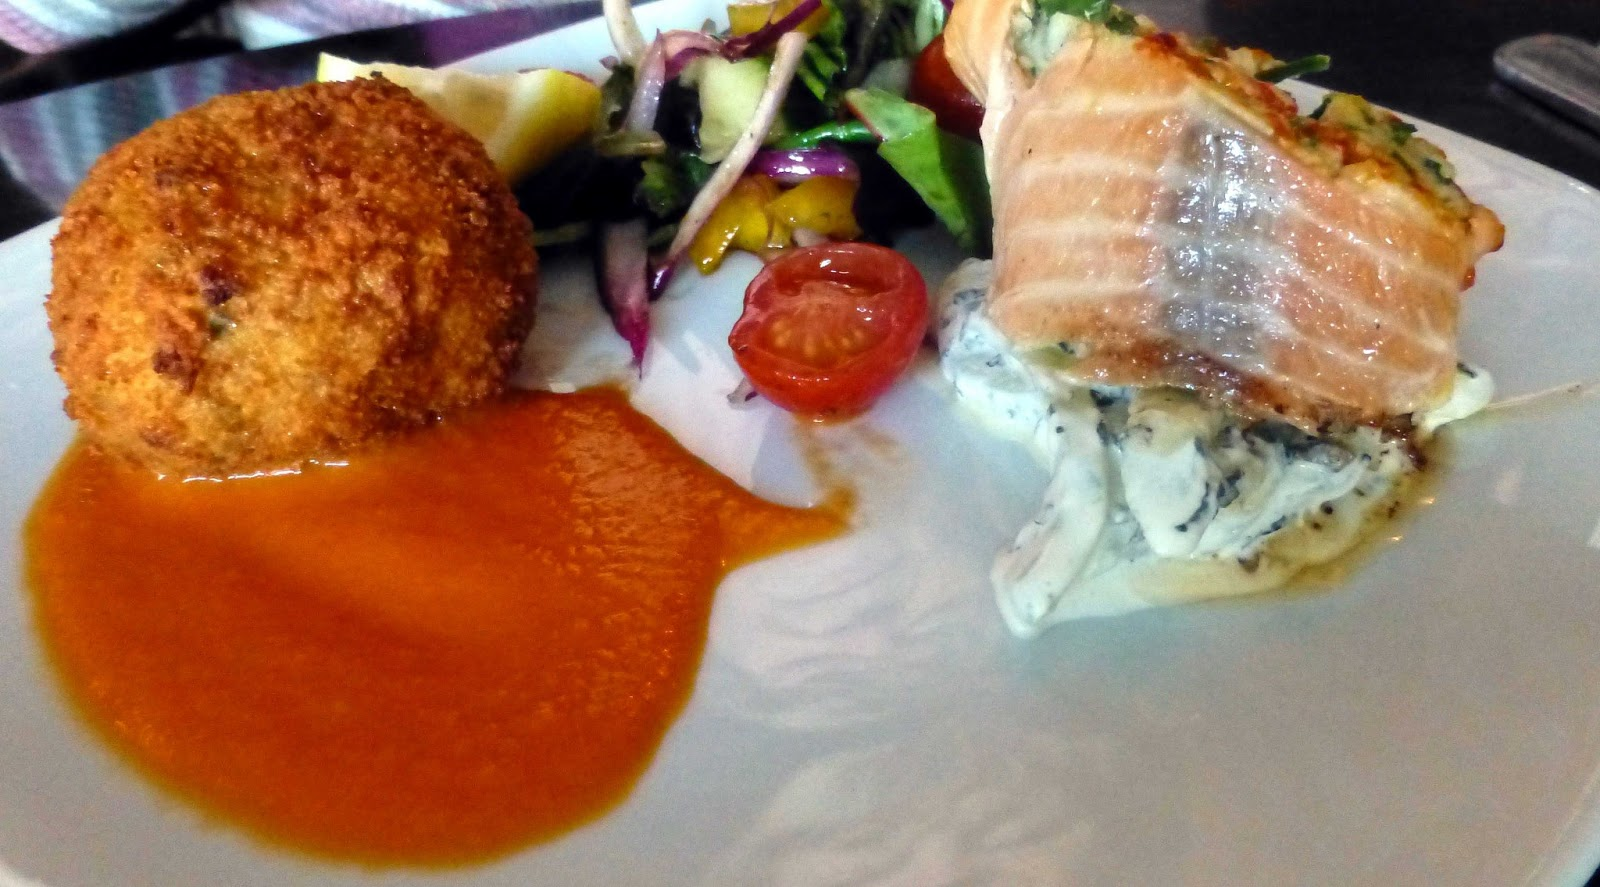 Restaurants and food youghal welcome for renovated walter for Bar food youghal